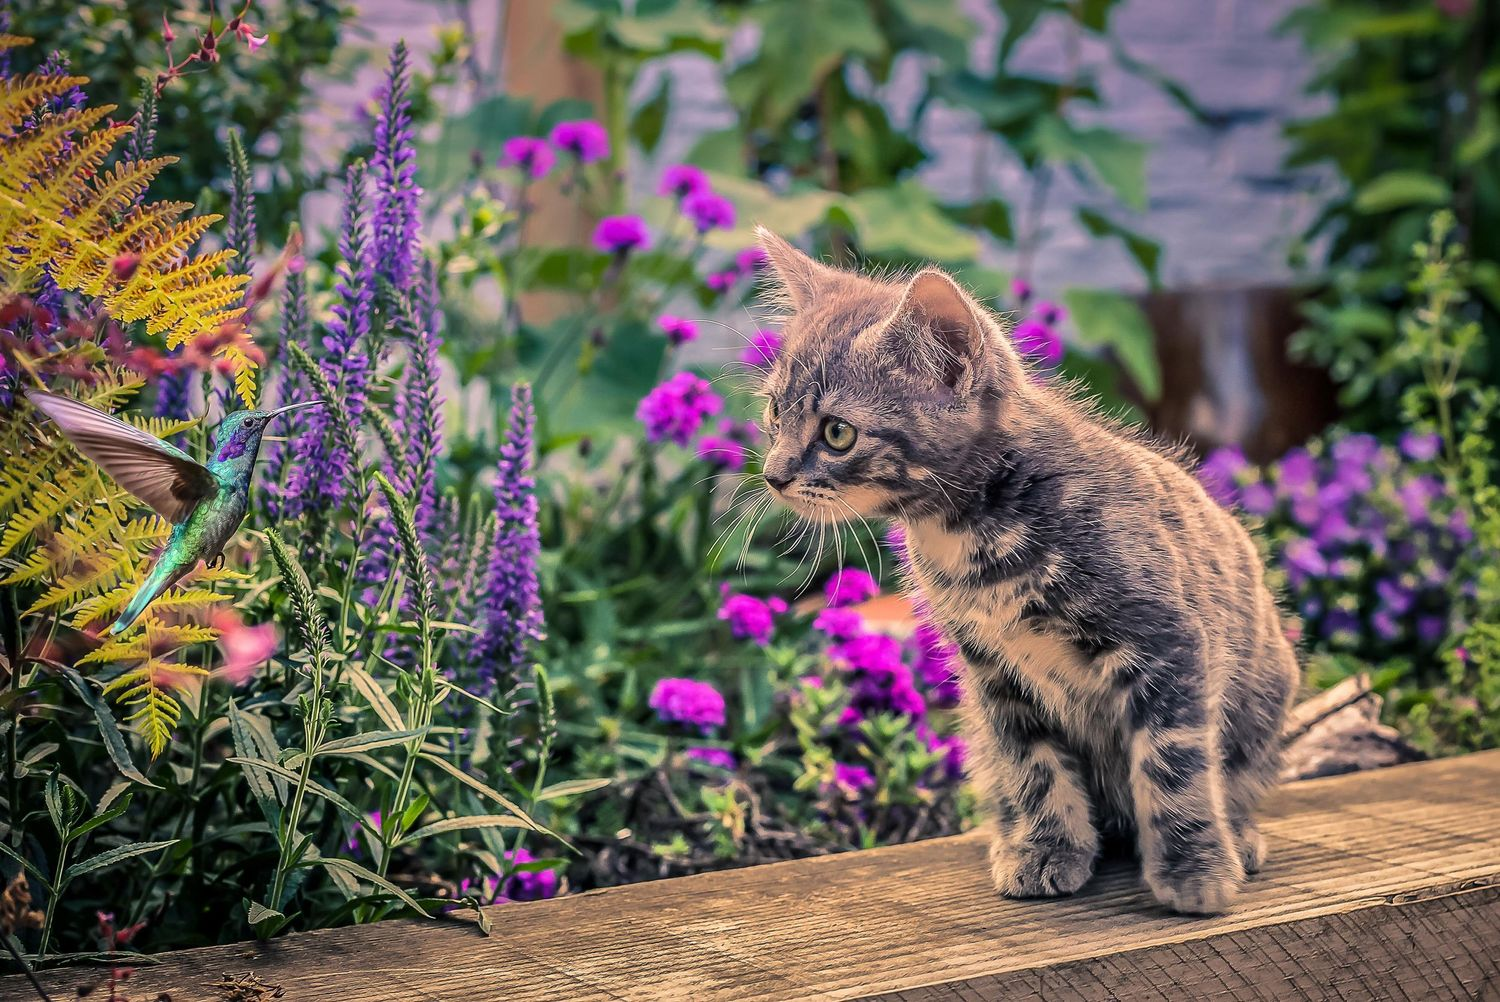 kitten and a hummingbird in the garden